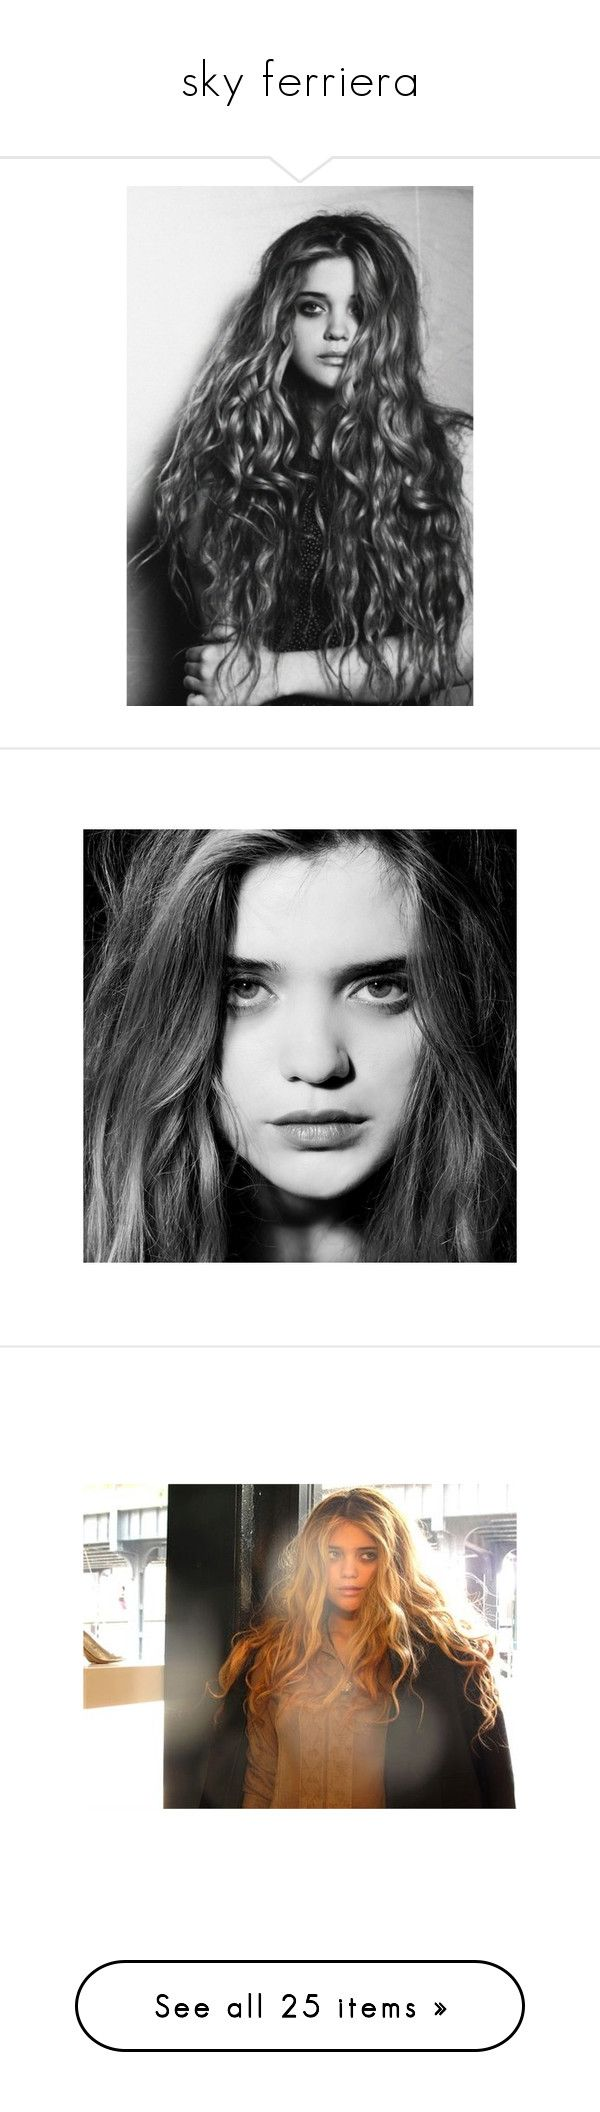 """""""sky ferriera"""" by wears-pink-on-wednesdays ❤ liked on Polyvore featuring pictures, sky ferreira, backgrounds, girls, models, sky ferriera, people, hair, site models and faces"""